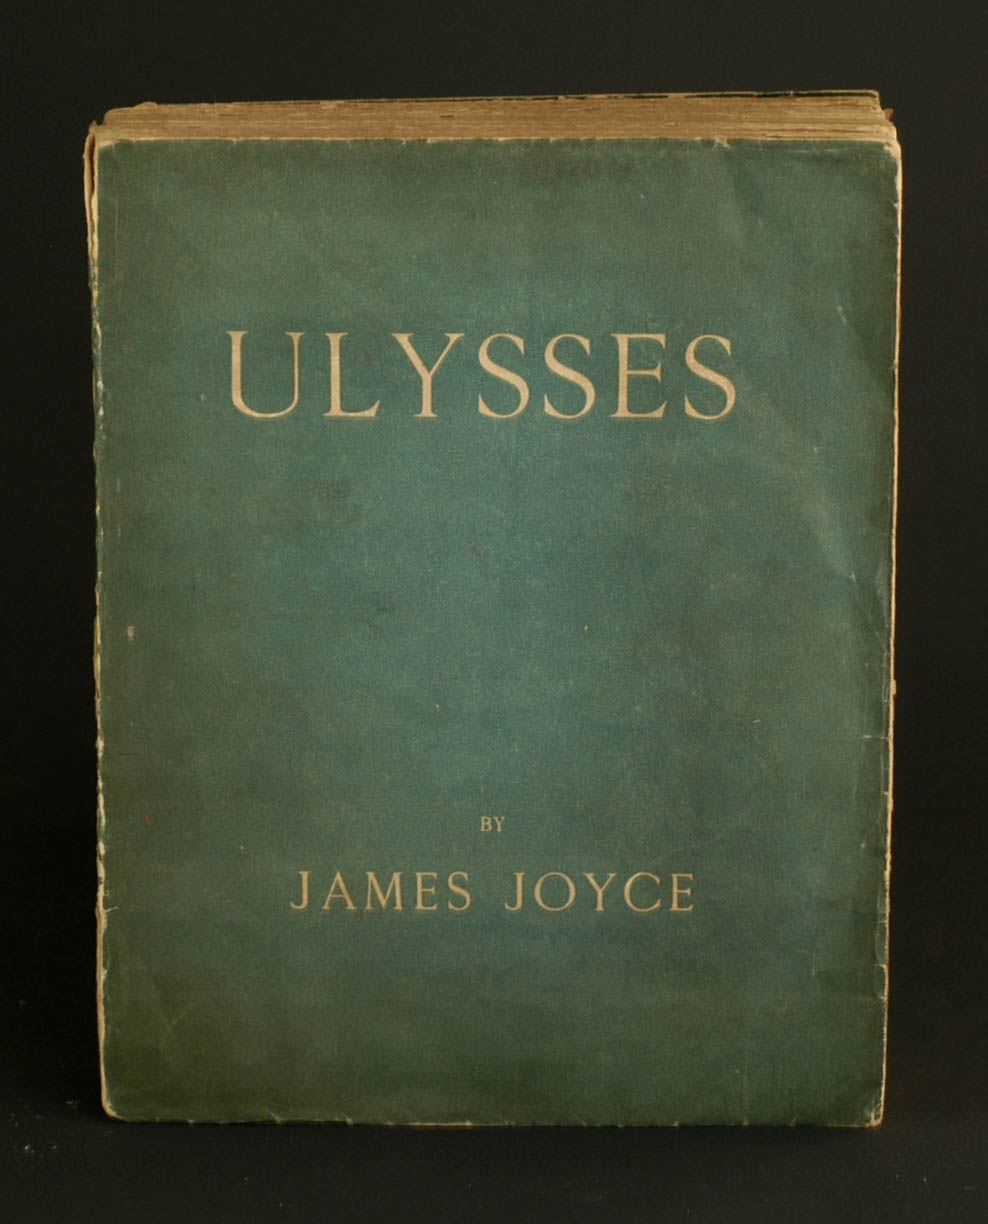 an analysis of the cybernetic plot of ulysses a novel by james joyce James joyce's ulysses - balancing information in ithaca i hold this book [ulysses] to be the most important expression which in selecting james joyce's ulysses as the best novel of the twentieth century, time magazine affirmed joyce's analysis of the novel dubliners by james joyce essay.